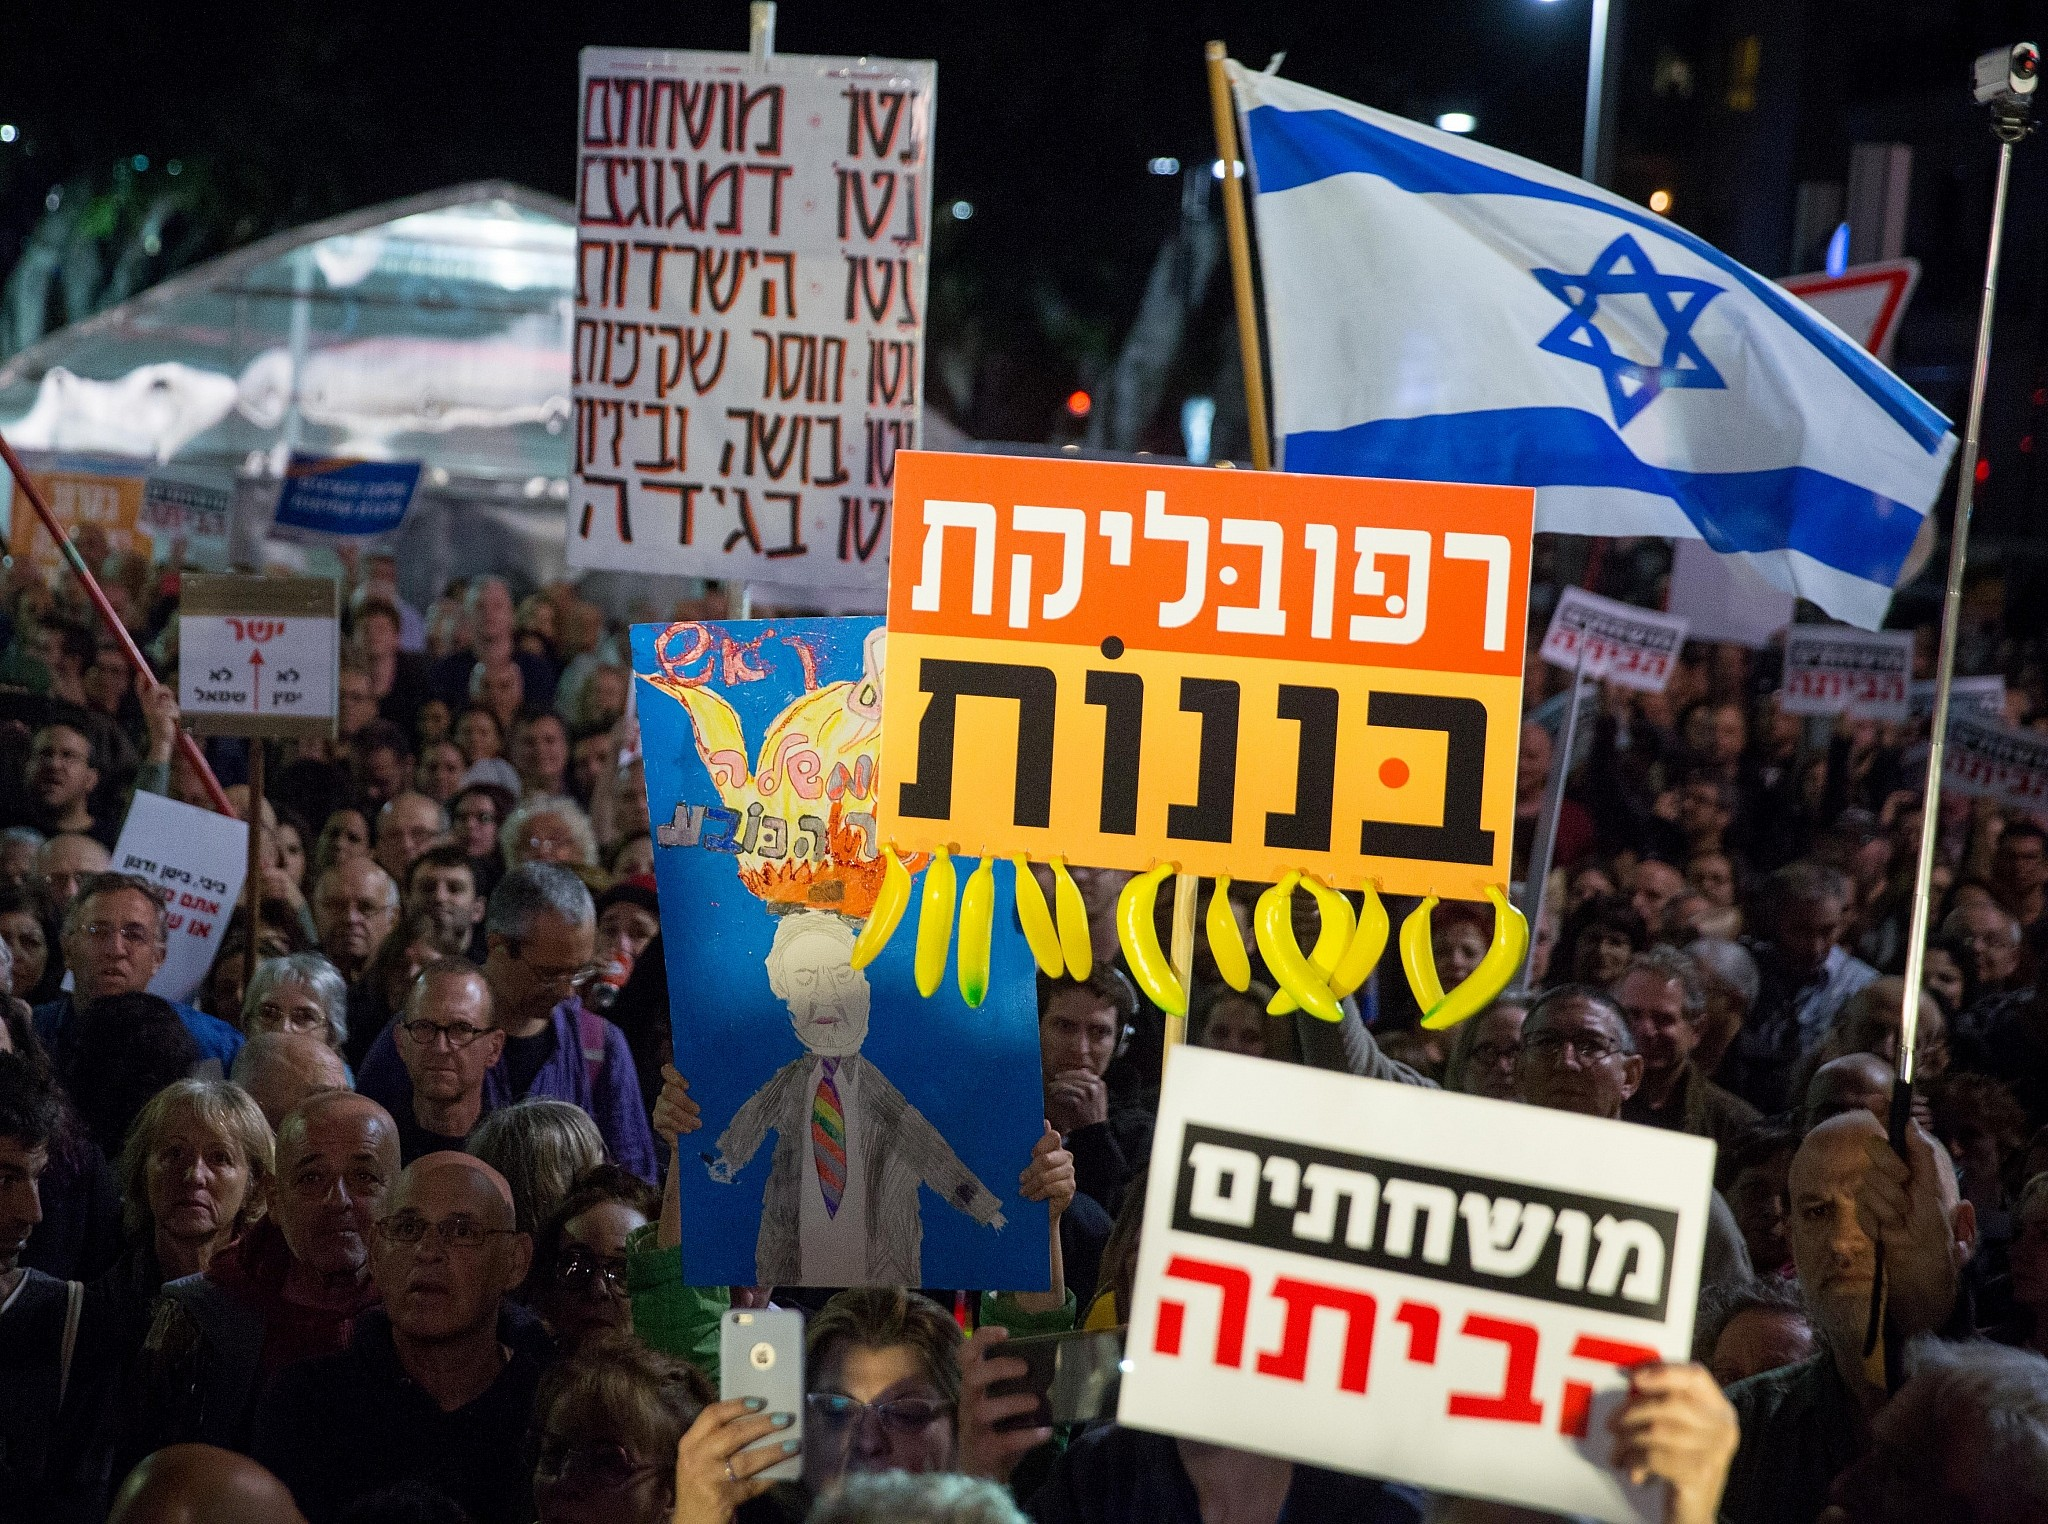 Netanyahu dubbed 'Crime Minister' as thousands protest in Tel Aviv against corruption